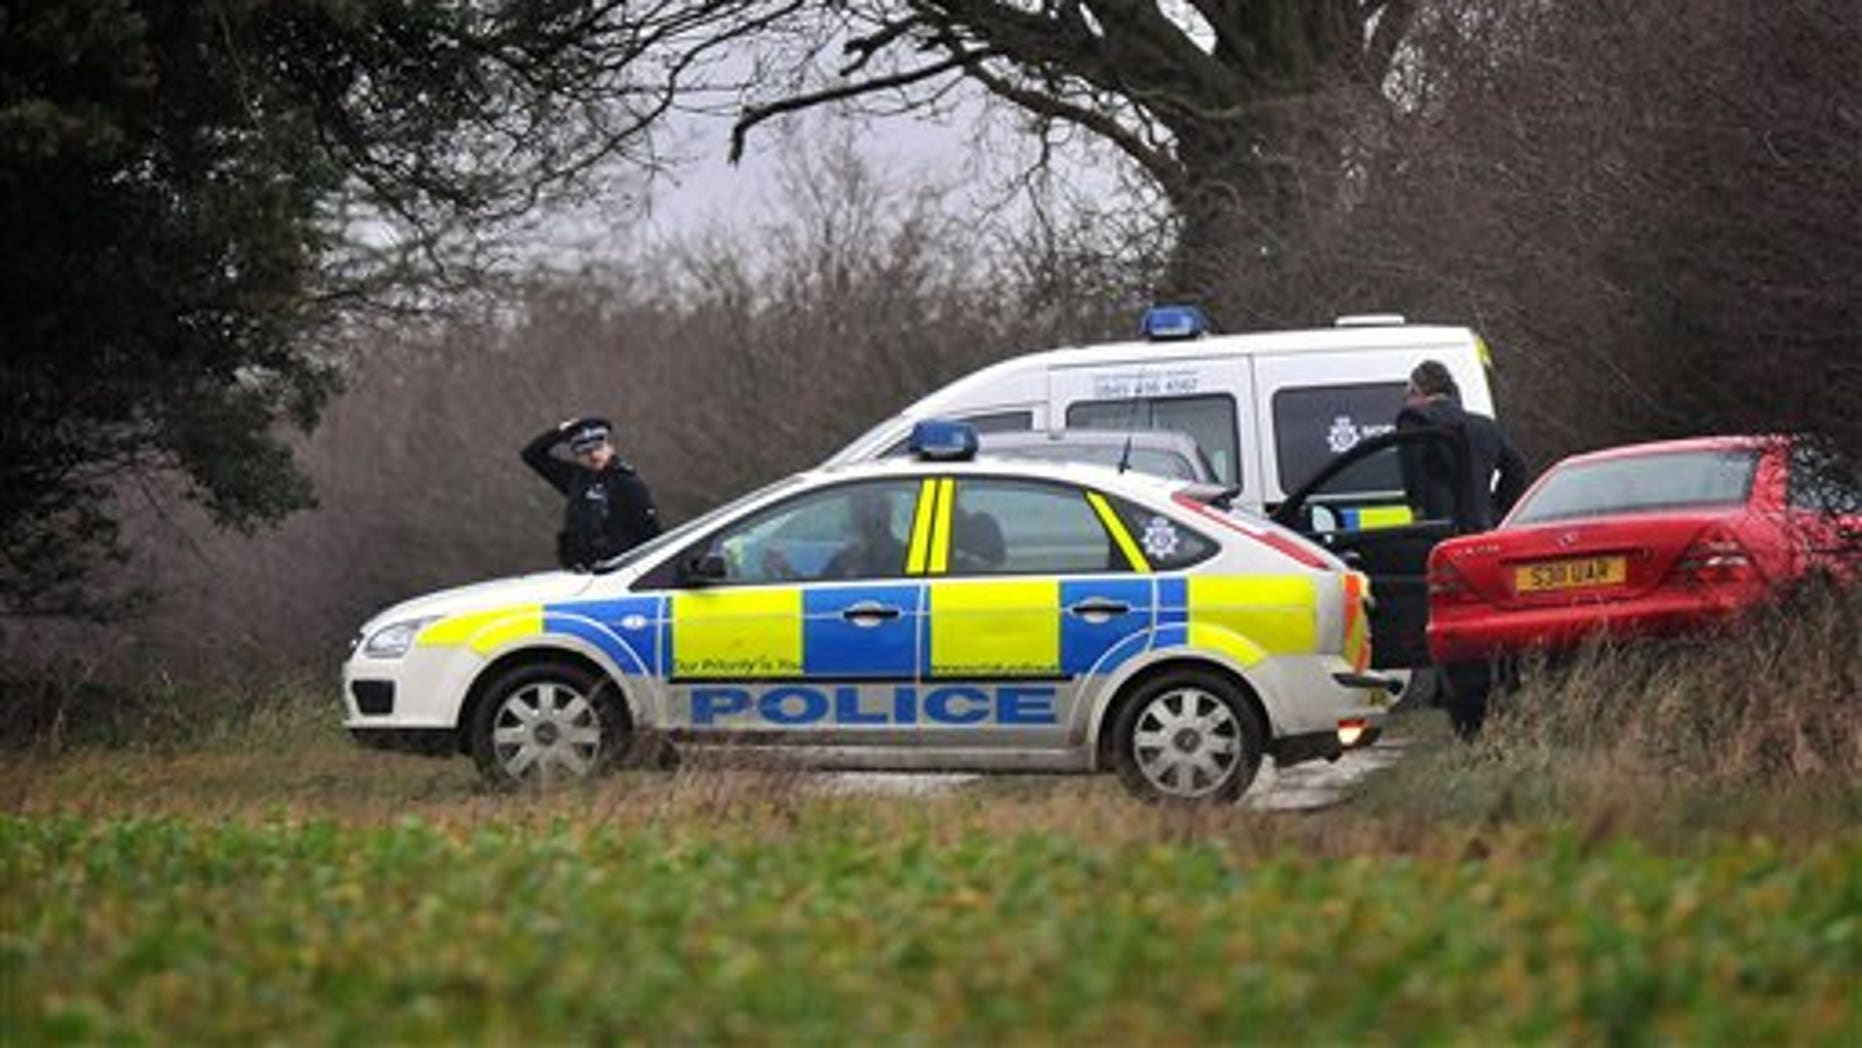 Jan. 3: Police attend the scene following the discovery of human remains on the Queen's Sandringham estate, in Norfolk, England.